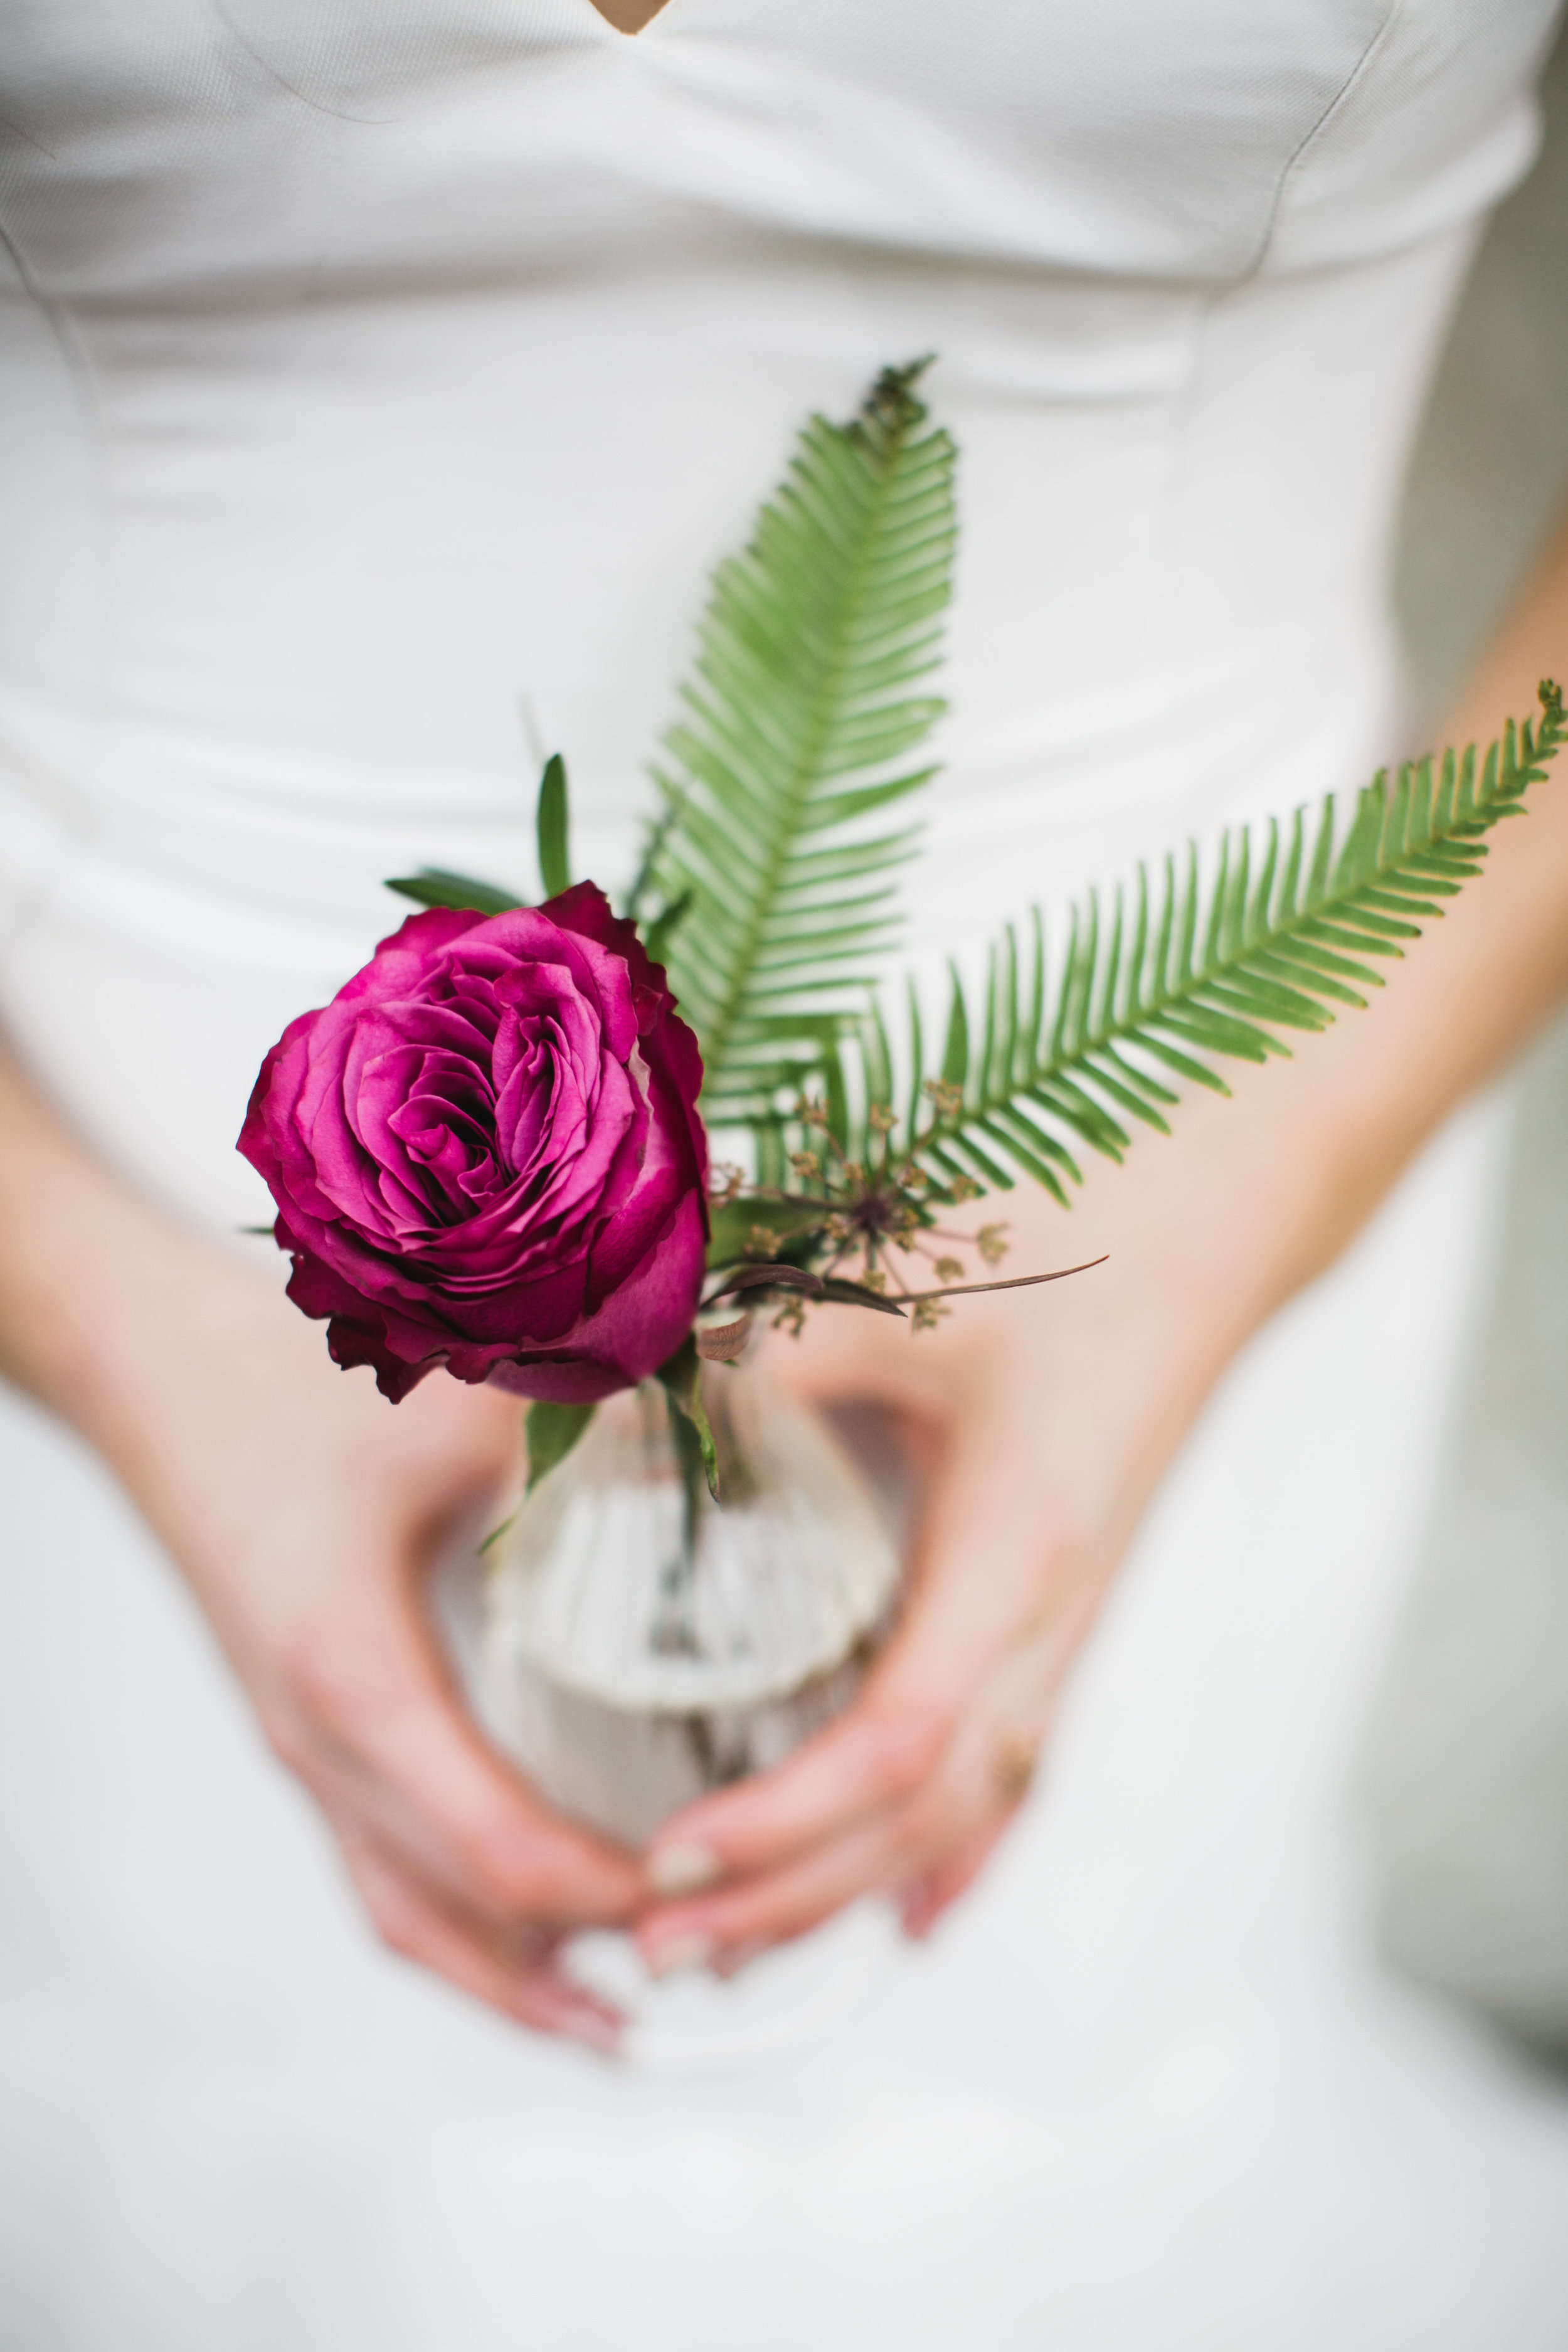 Stem Vase Centrepieces - Cost-Effective Wedding Flowers